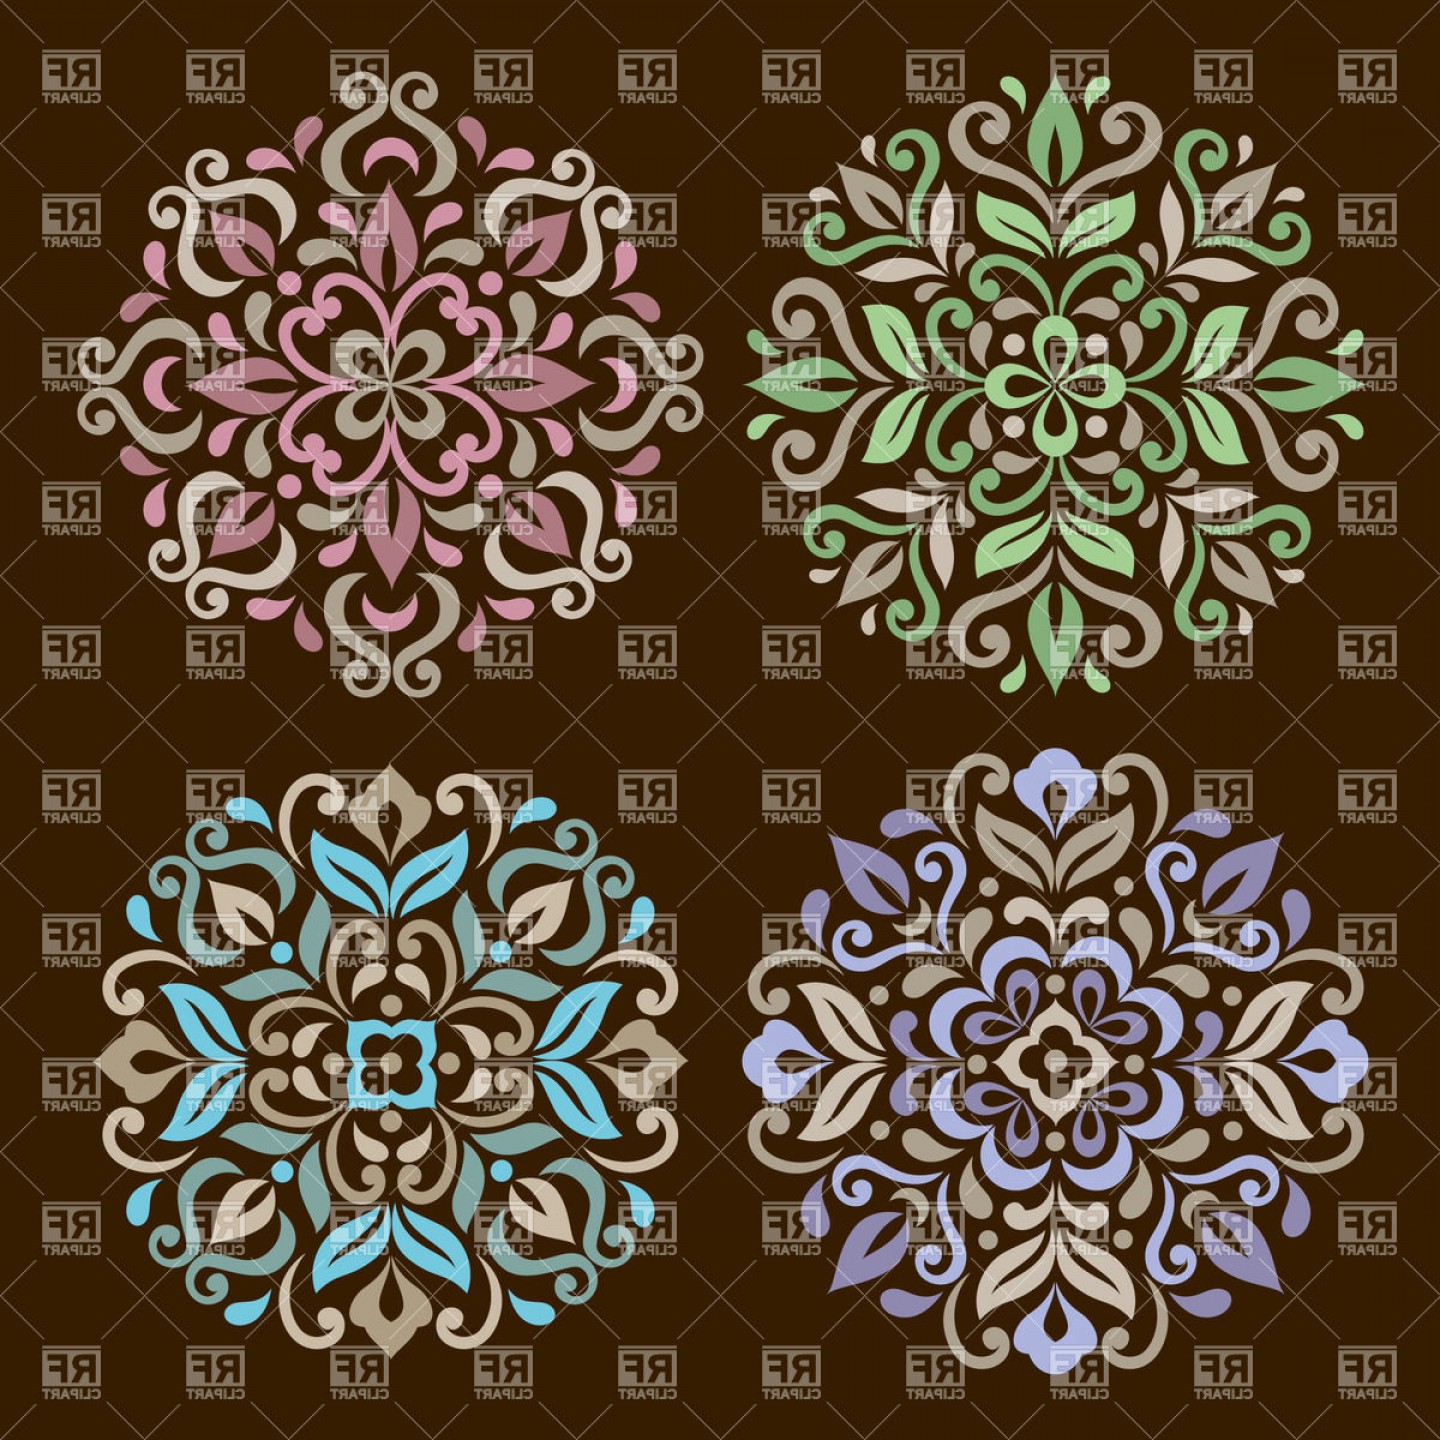 Mandala vector clipart image library Round Ornamental Elements Floral Mandala Vector Clipart | CQRecords image library